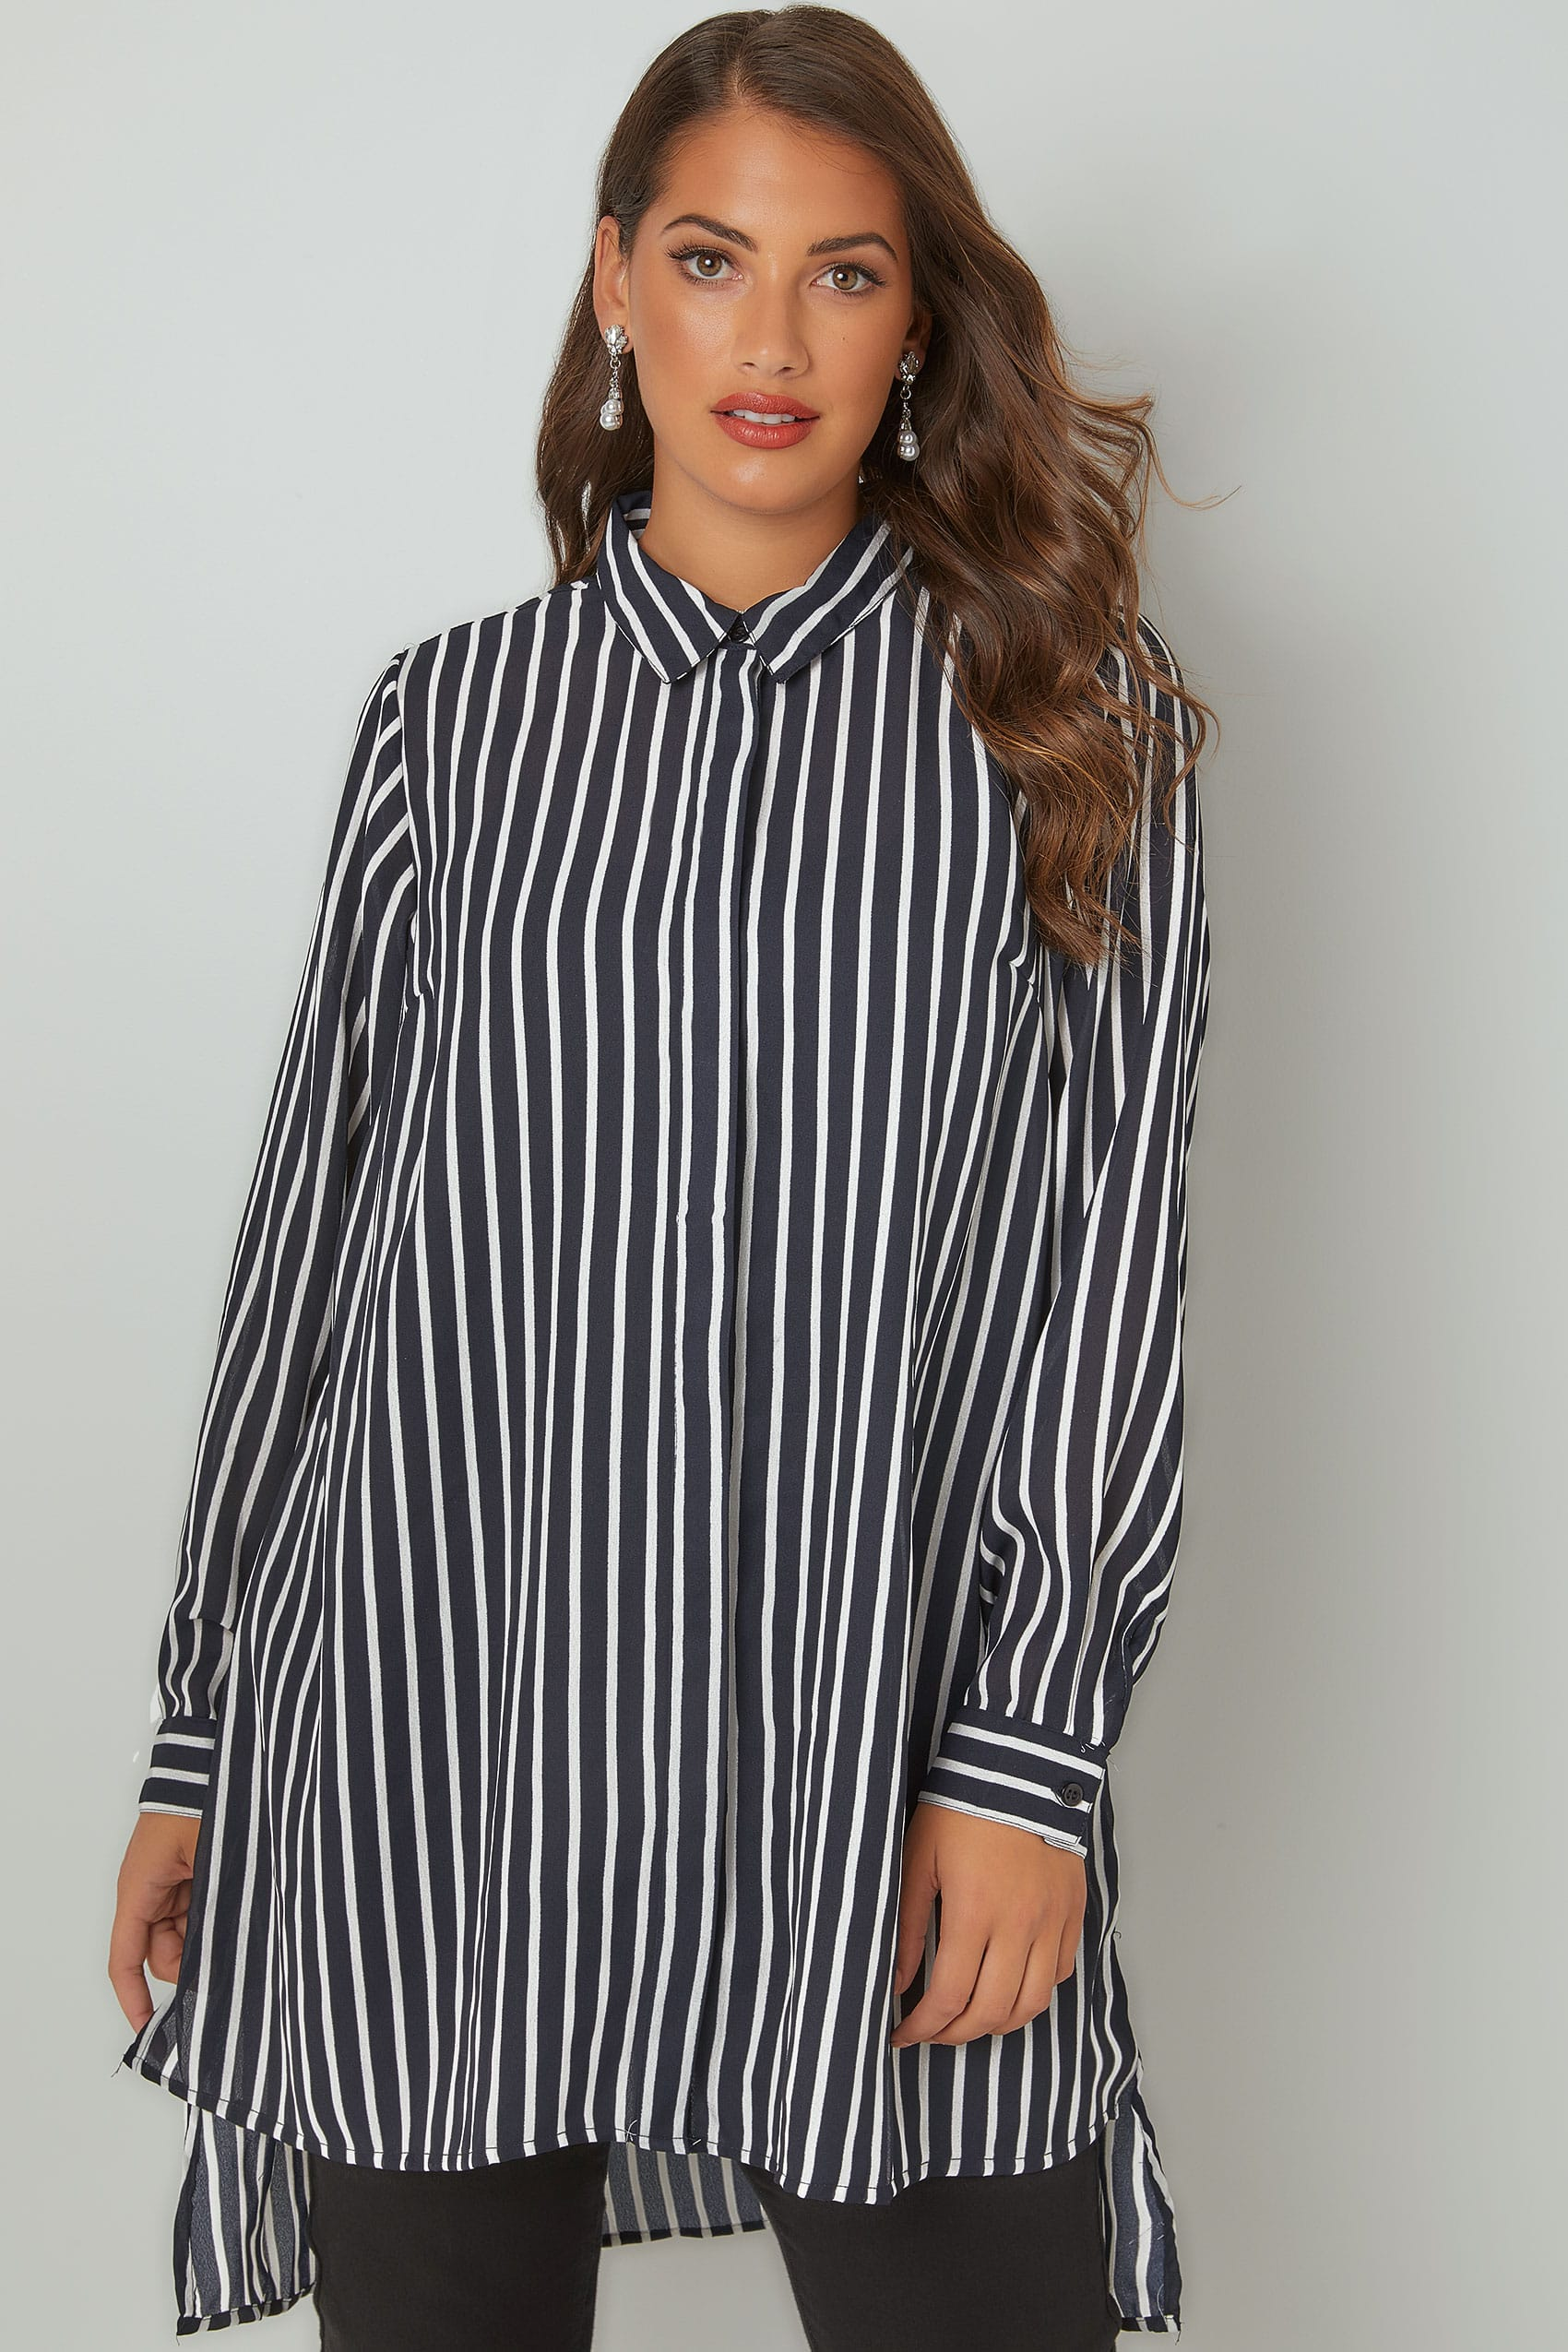 navy white striped longline shirt with step hem plus size 16 to 32. Black Bedroom Furniture Sets. Home Design Ideas